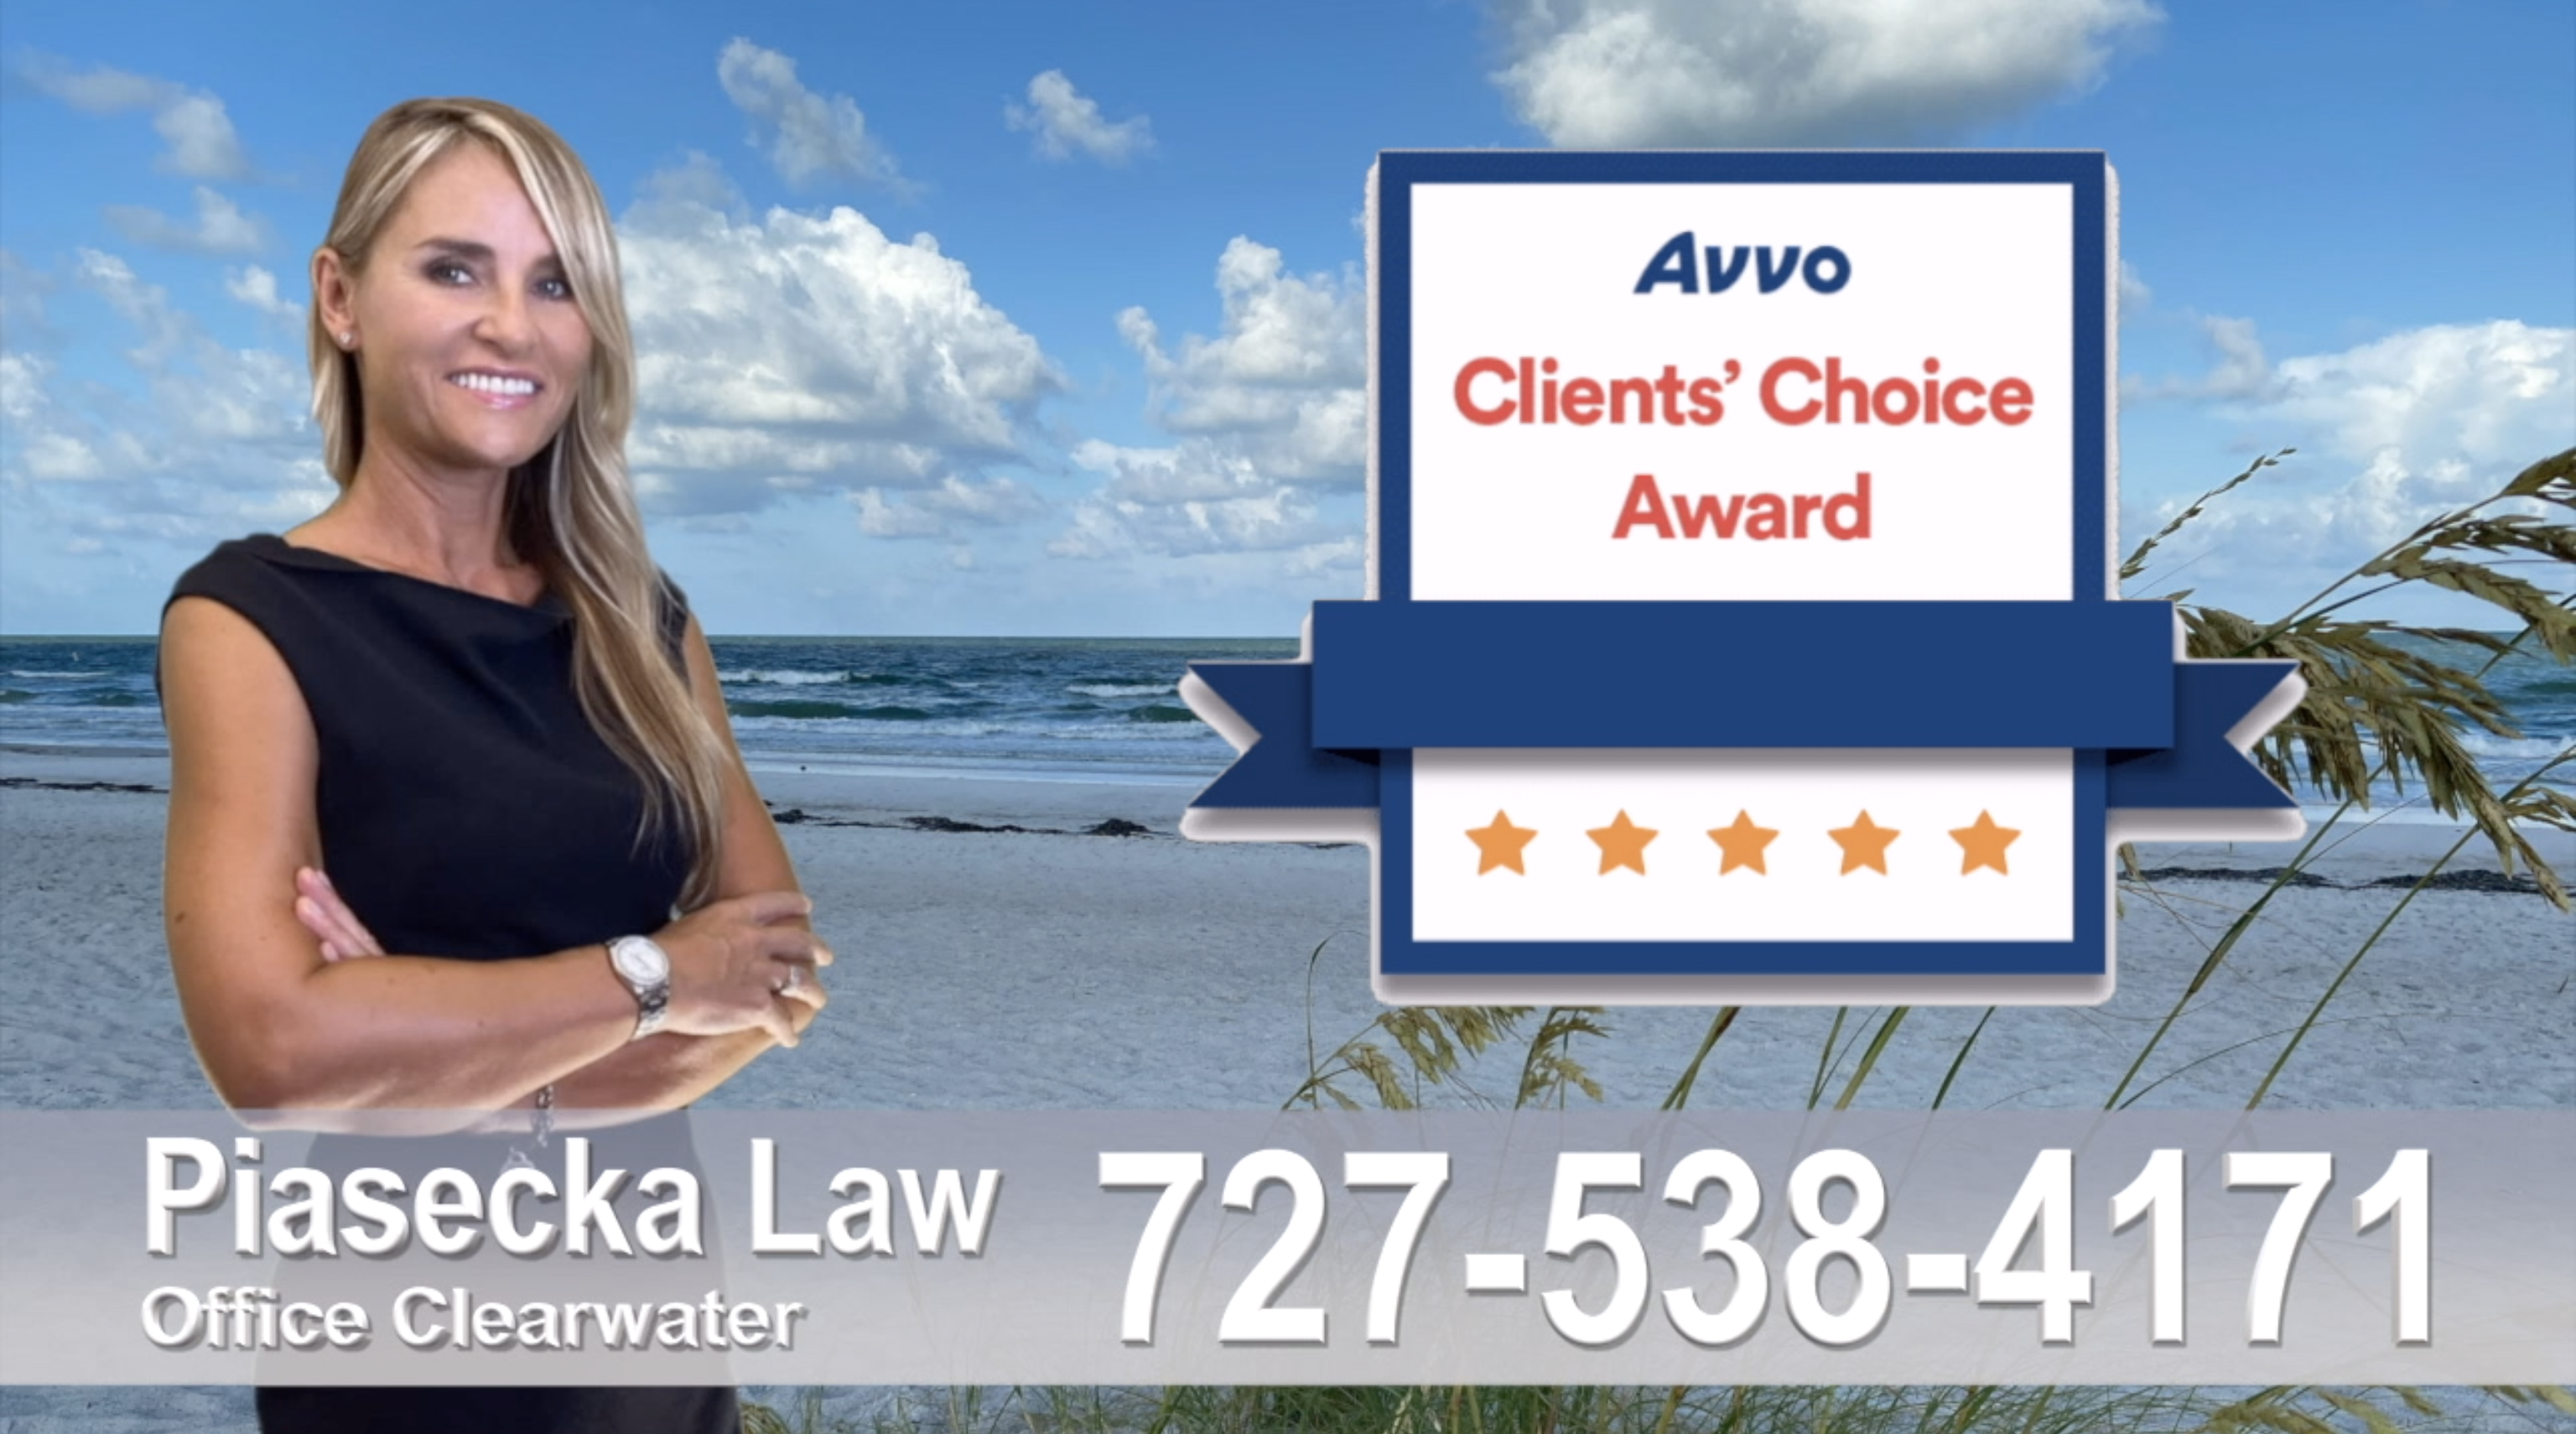 Polish Immigration Attorney lawyer, clients, best, reviews, award, avvo